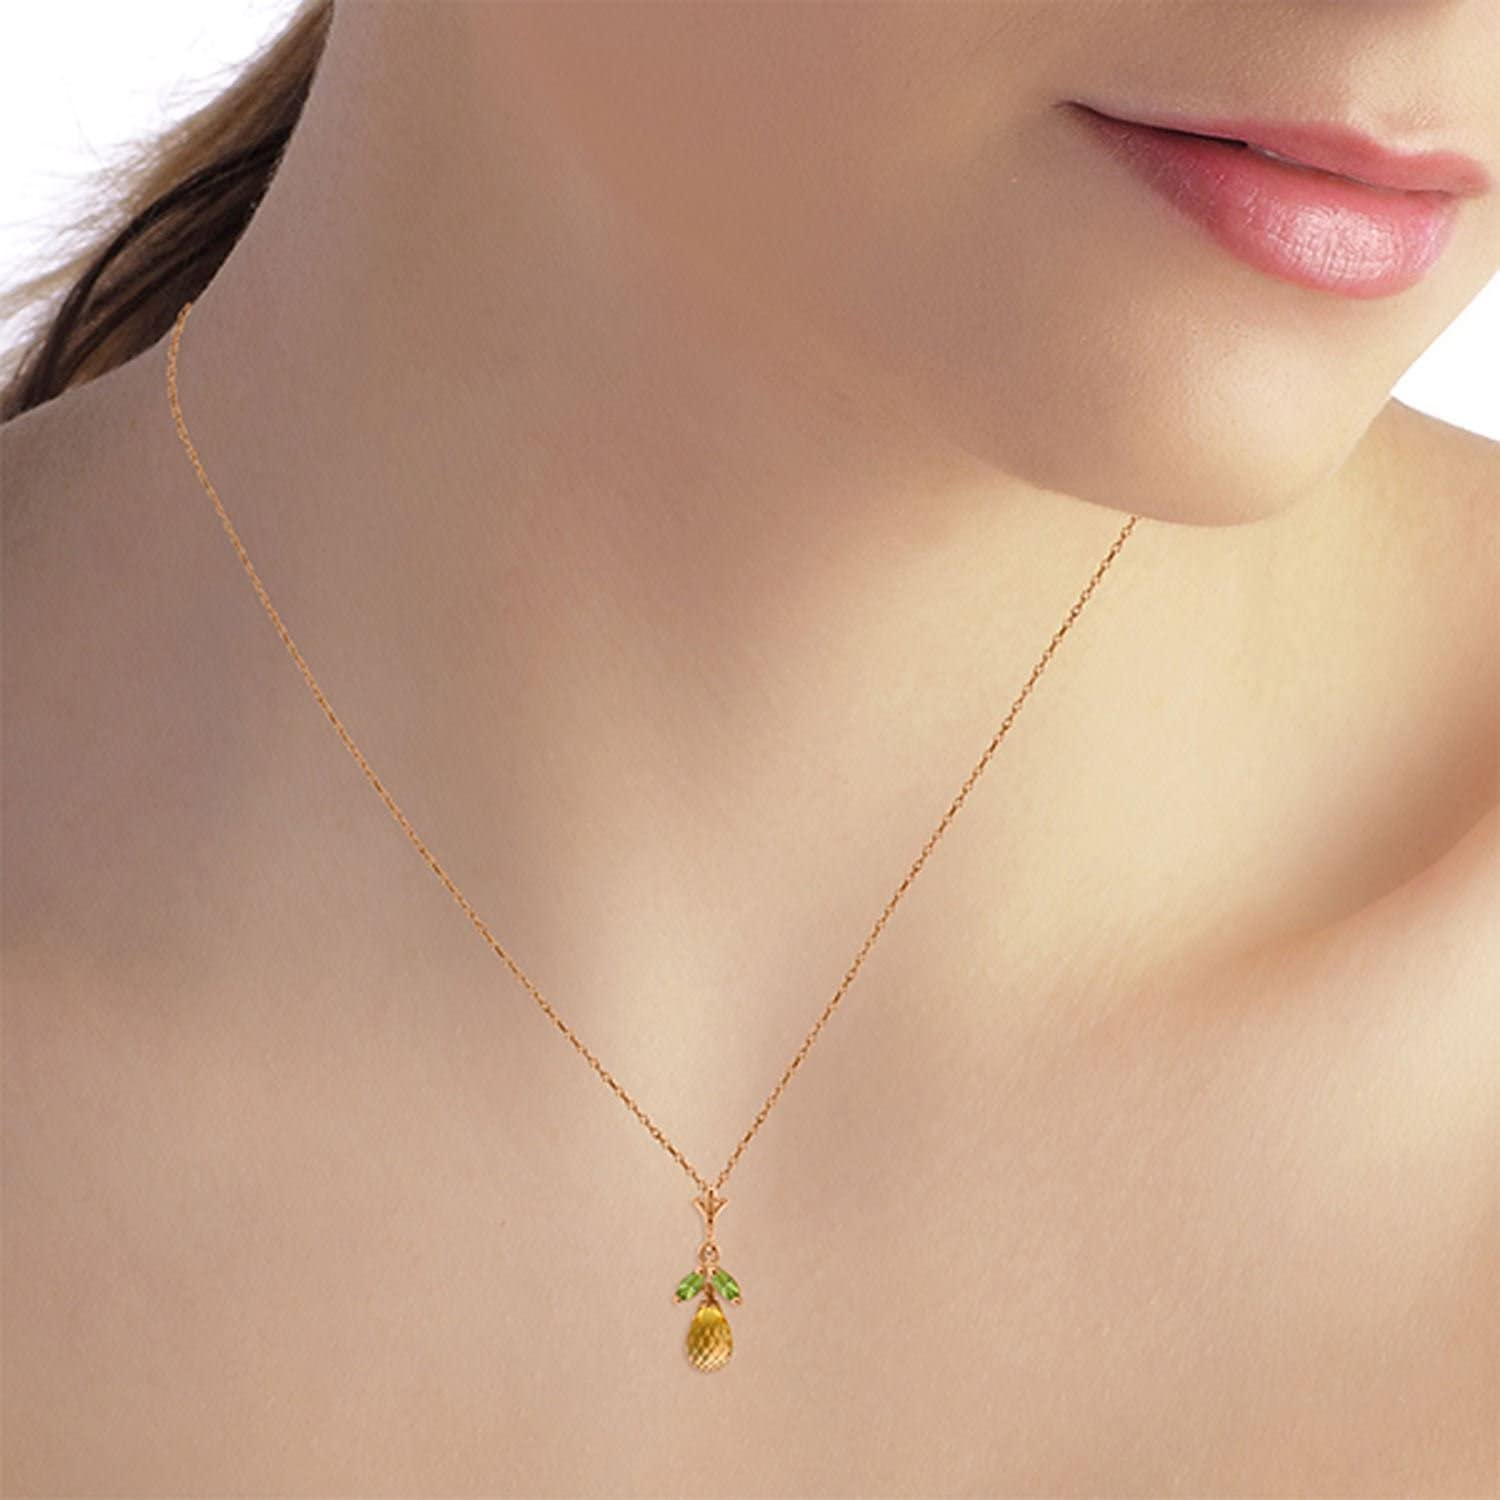 ALARRI 14K Solid Rose Gold Necklace w// Citrine /& Peridots with 24 Inch Chain Length